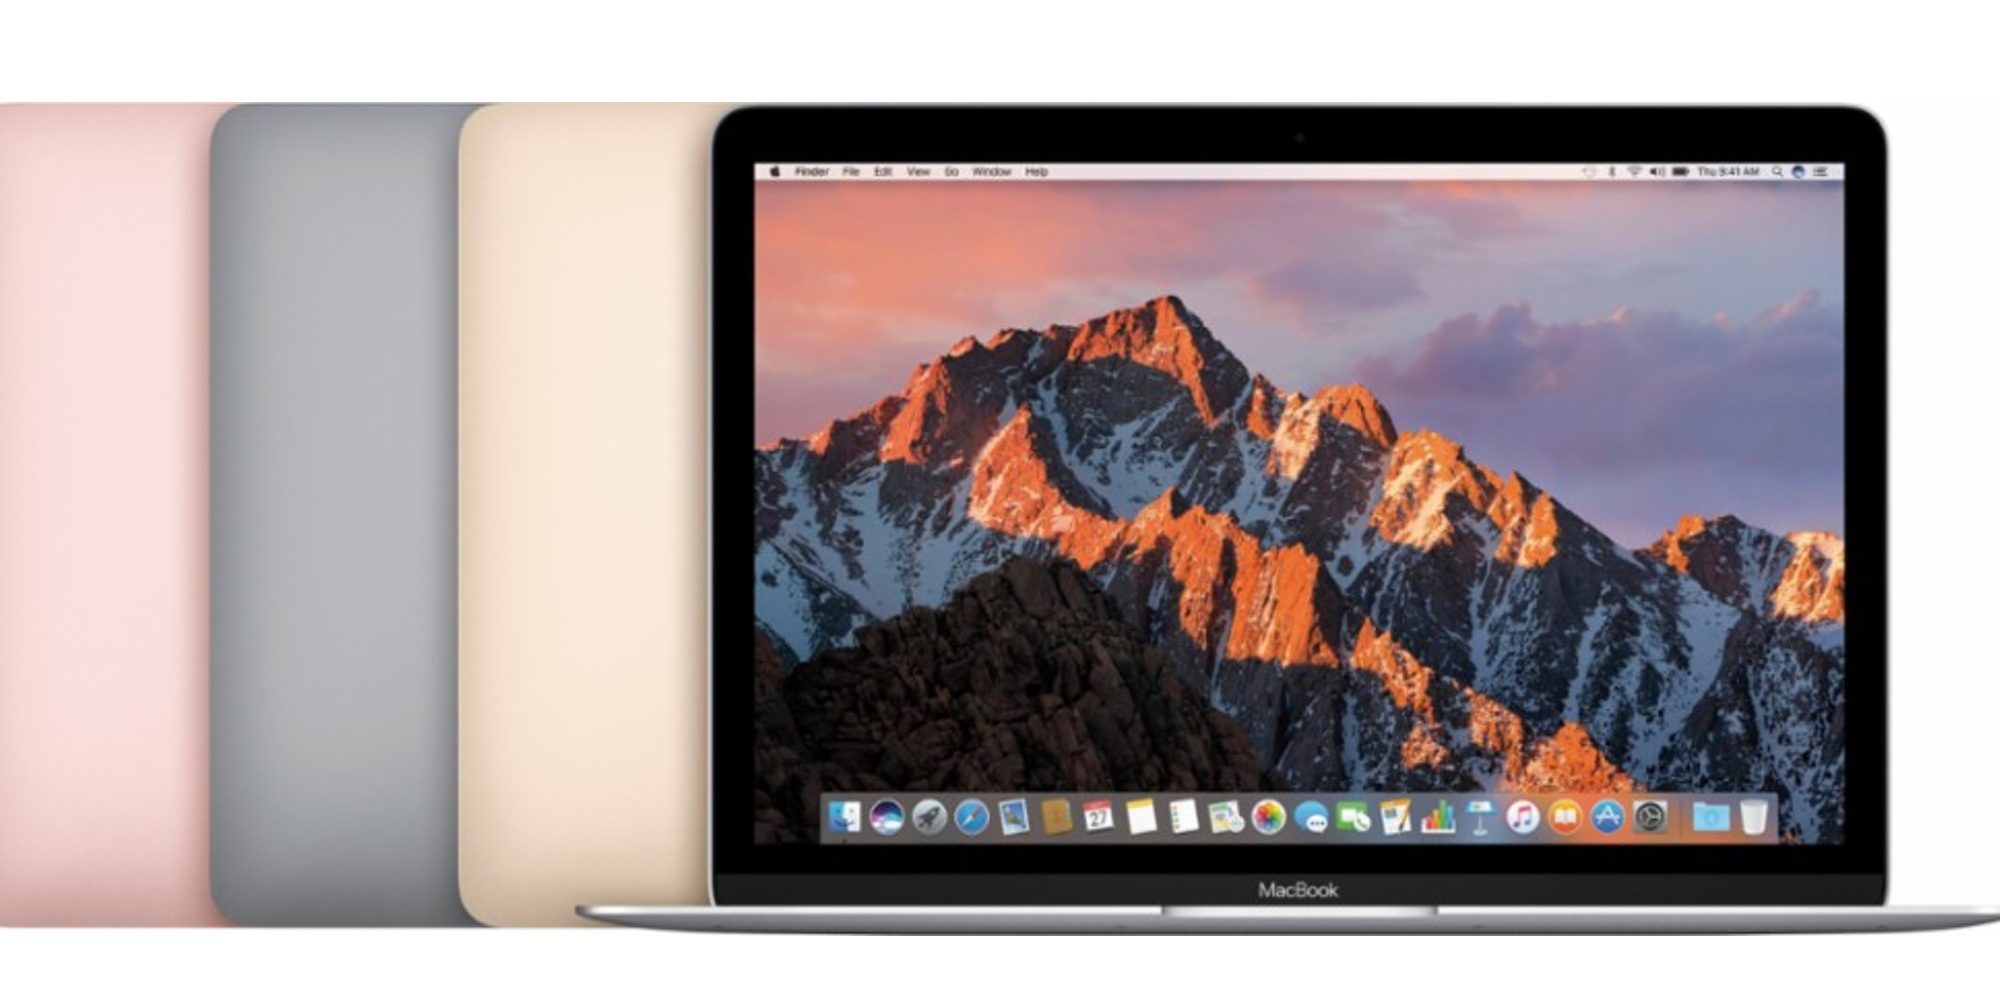 Amazon knocks Apple's 12-inch MacBook down to $929, today only (Cert. Refurb)